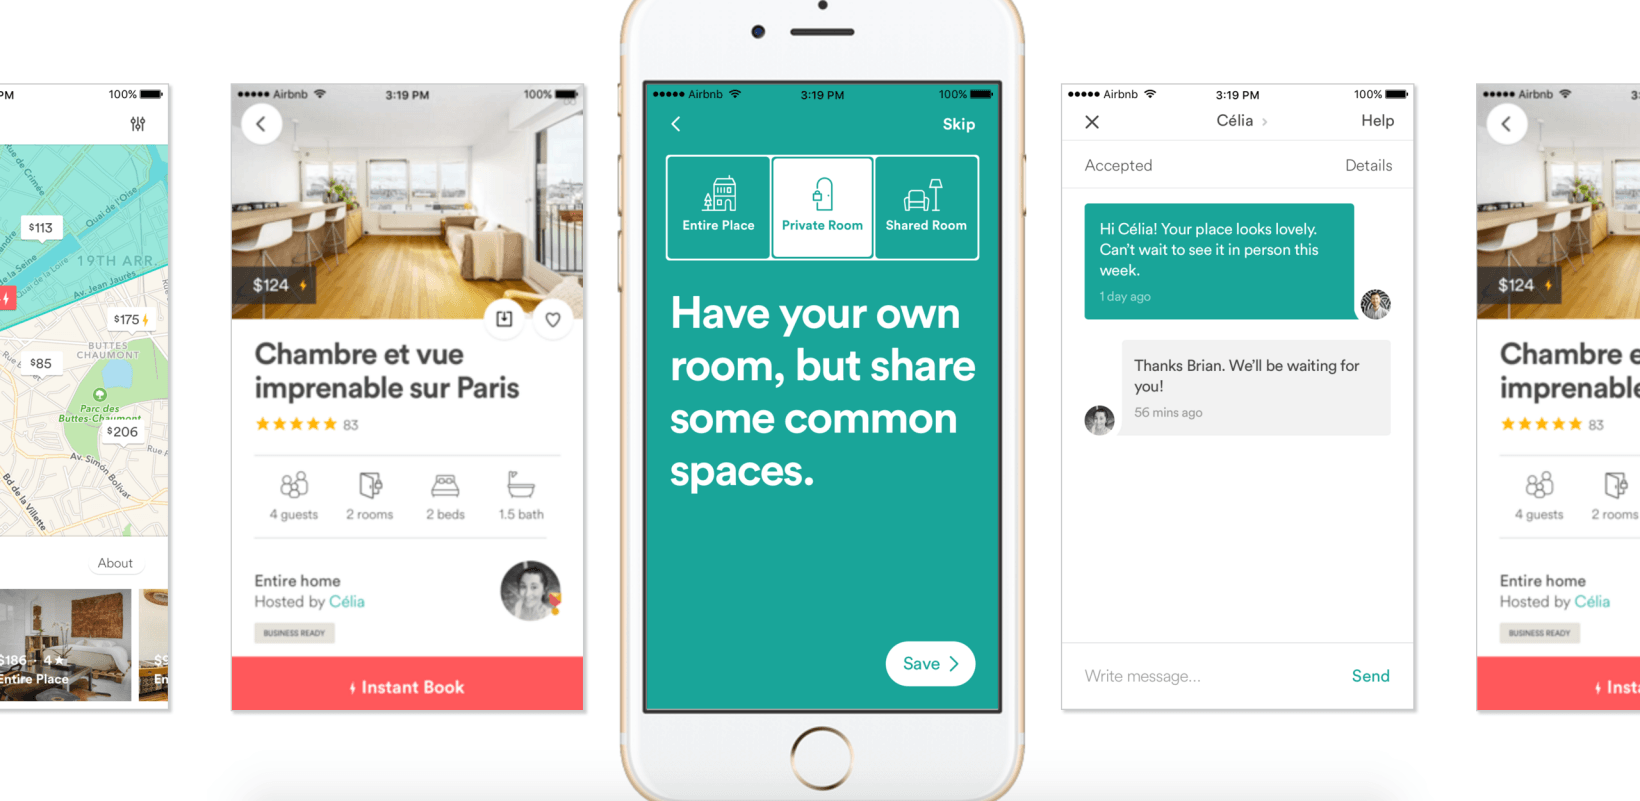 Airbnb's new matching and guidebook tools help travelers